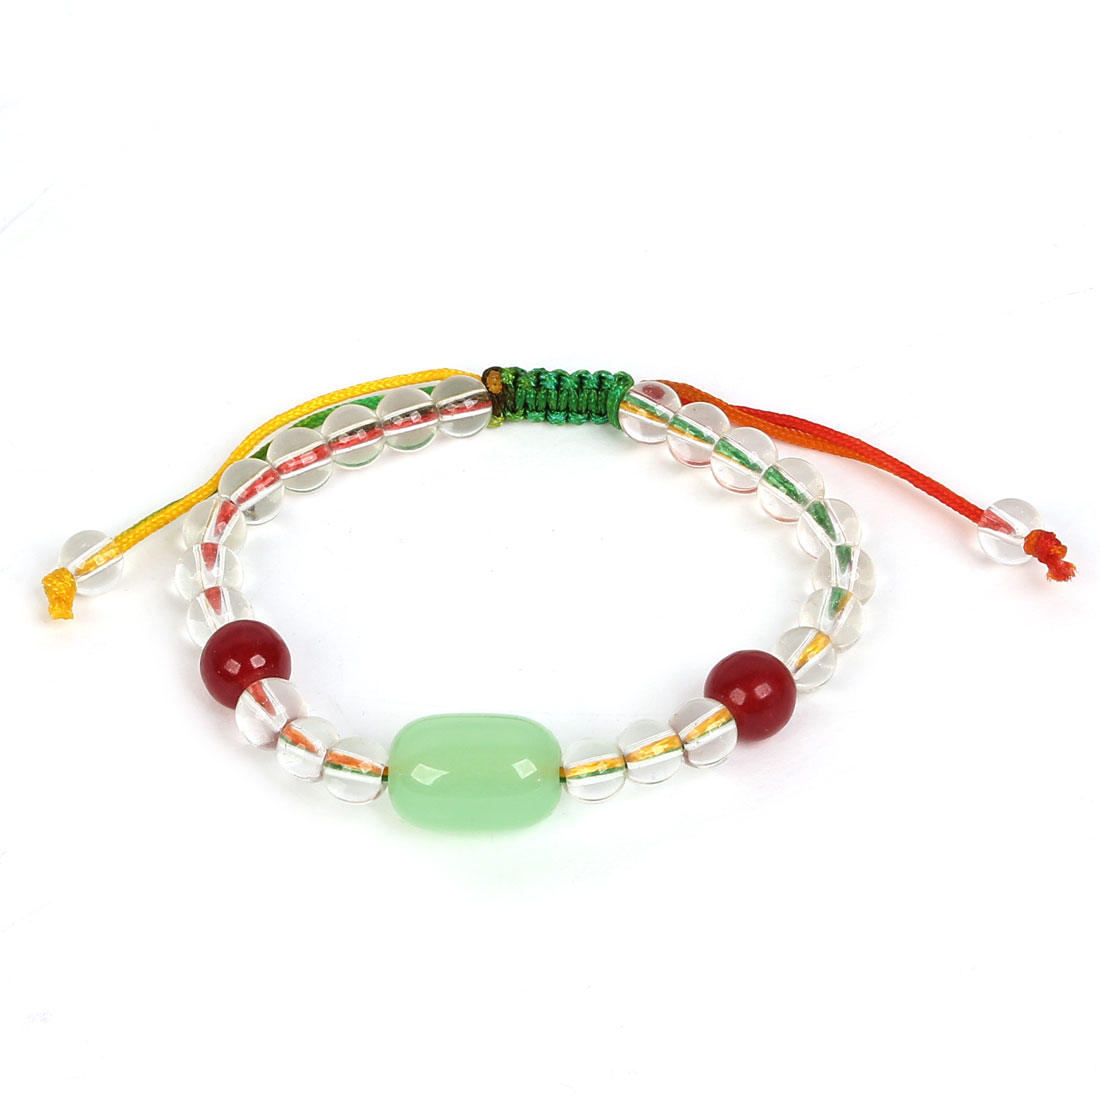 Fashion Jewelry Modern Crystal Beads Bracelet